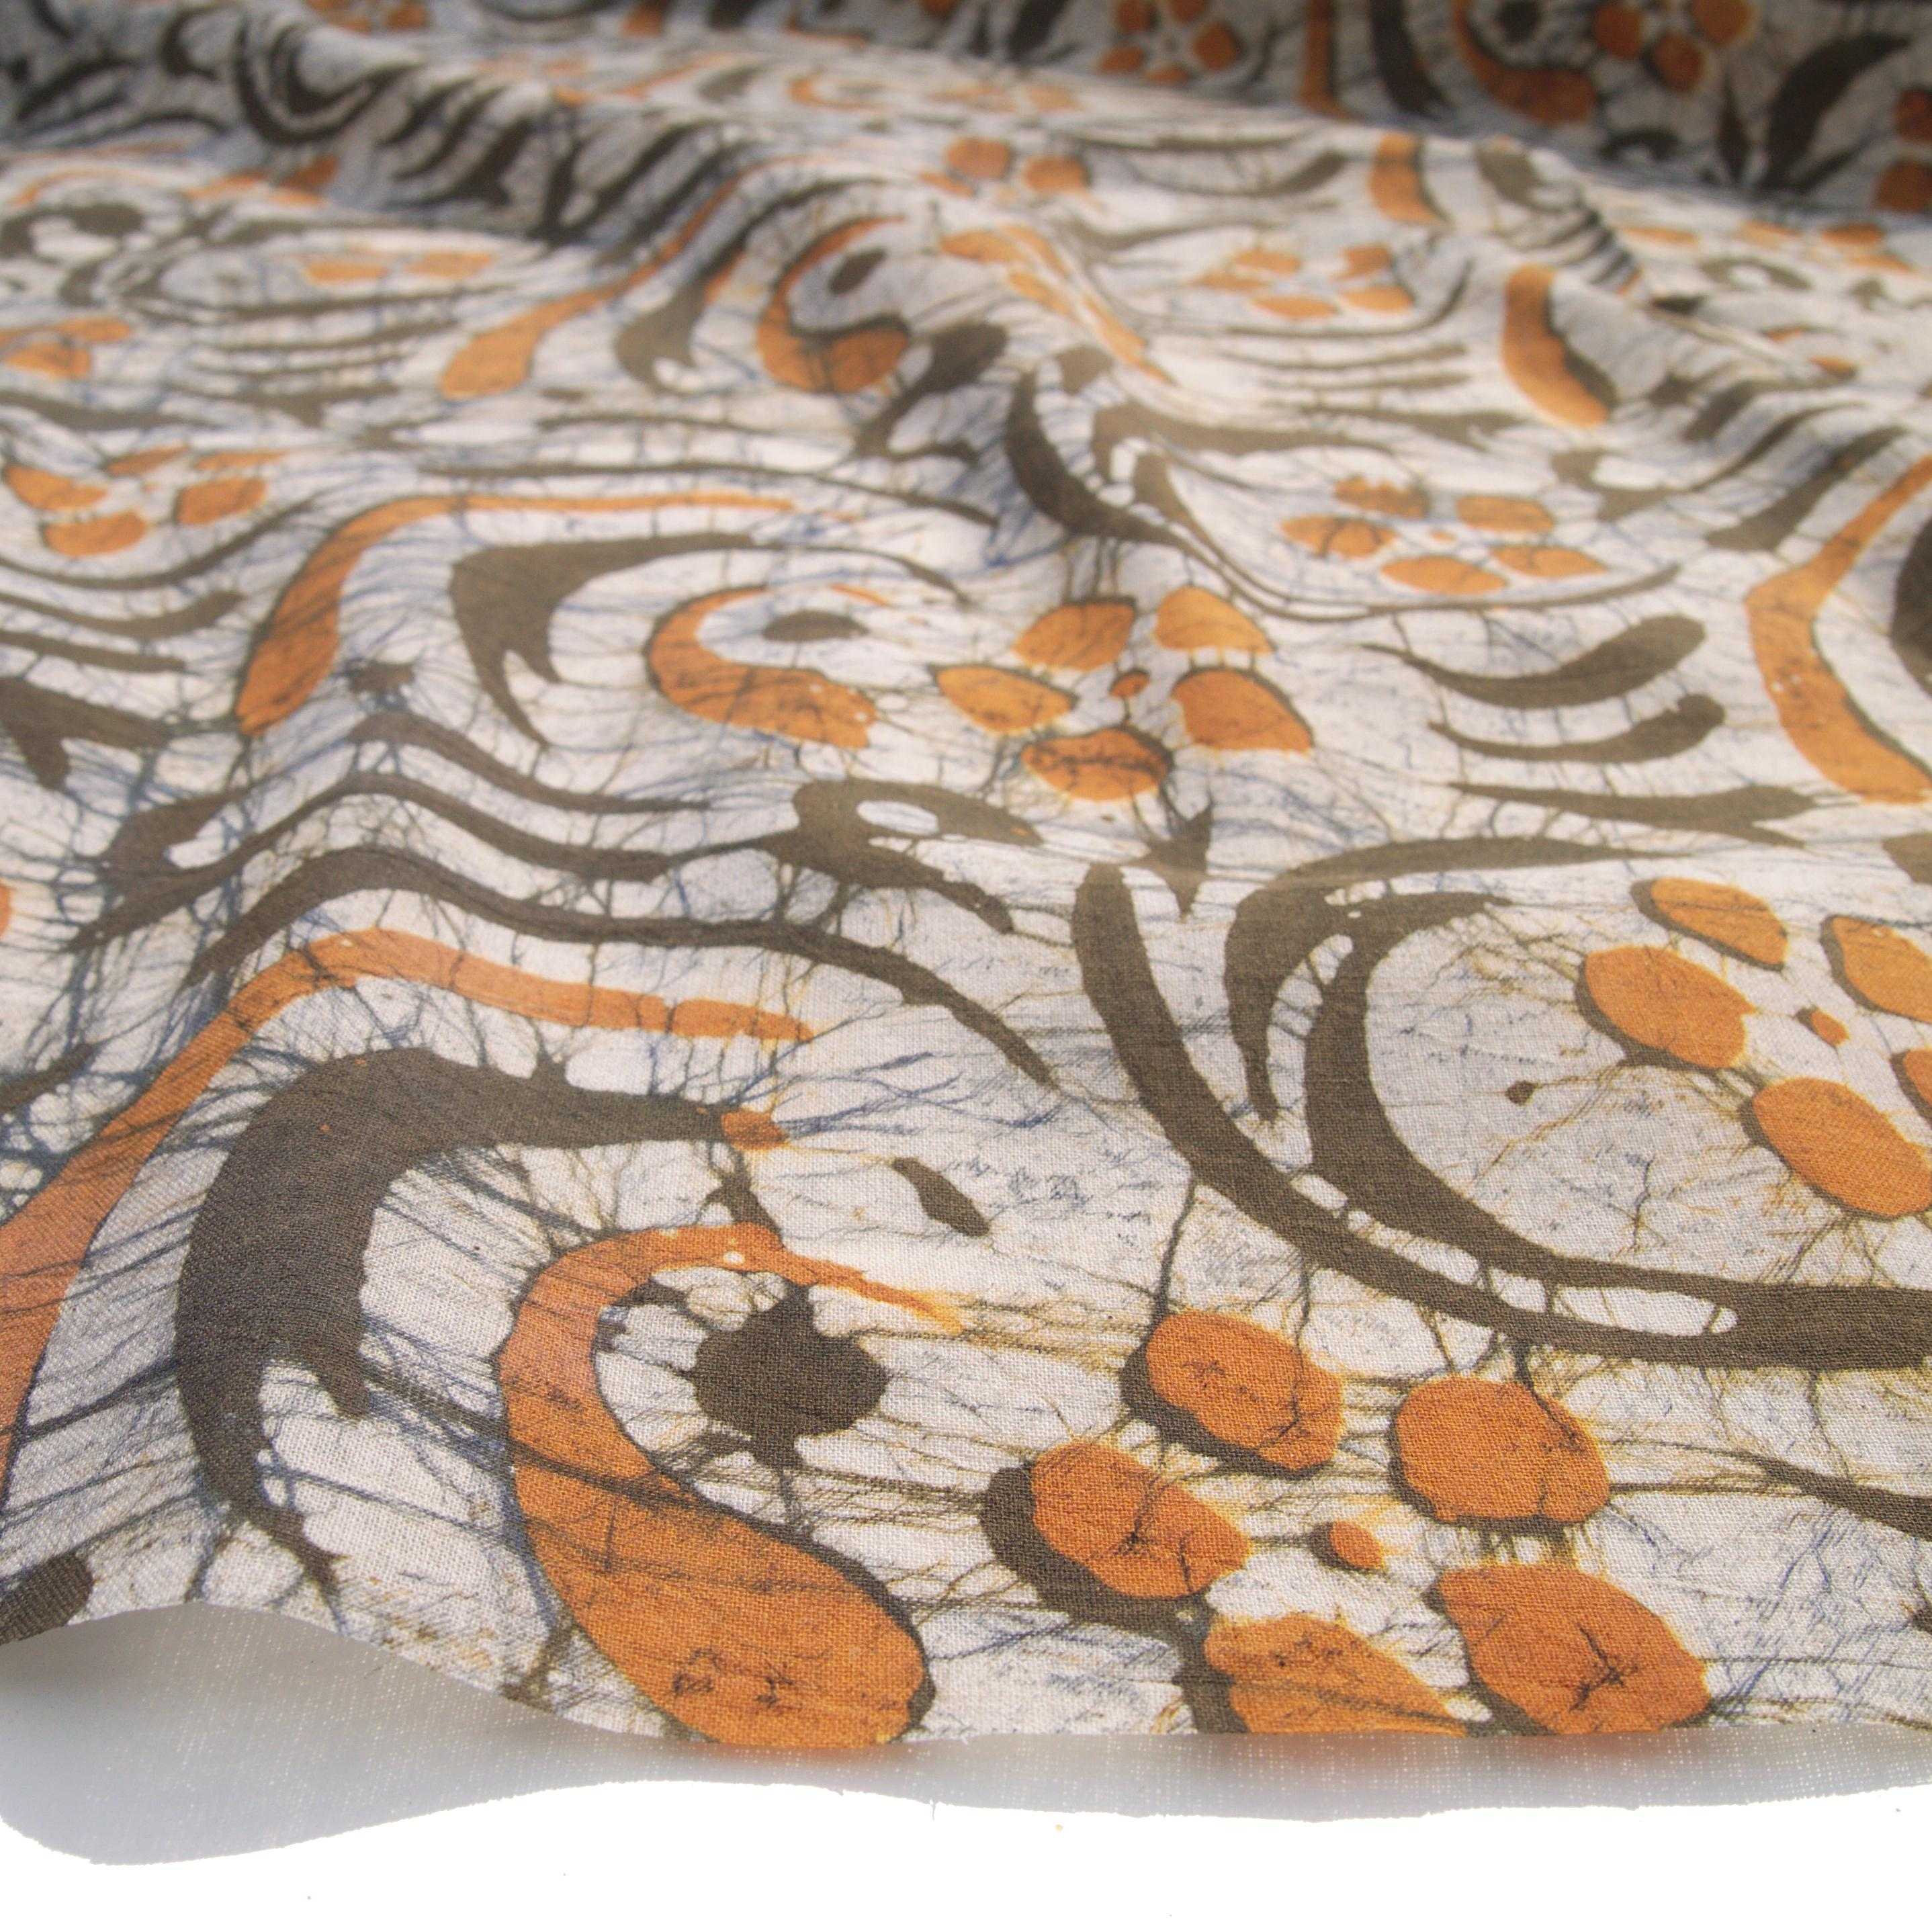 2 - SHA18 - 100% Block-Printed Batik Cotton Fabric From India - Stirred Not Shaken Motif - Angle - Live